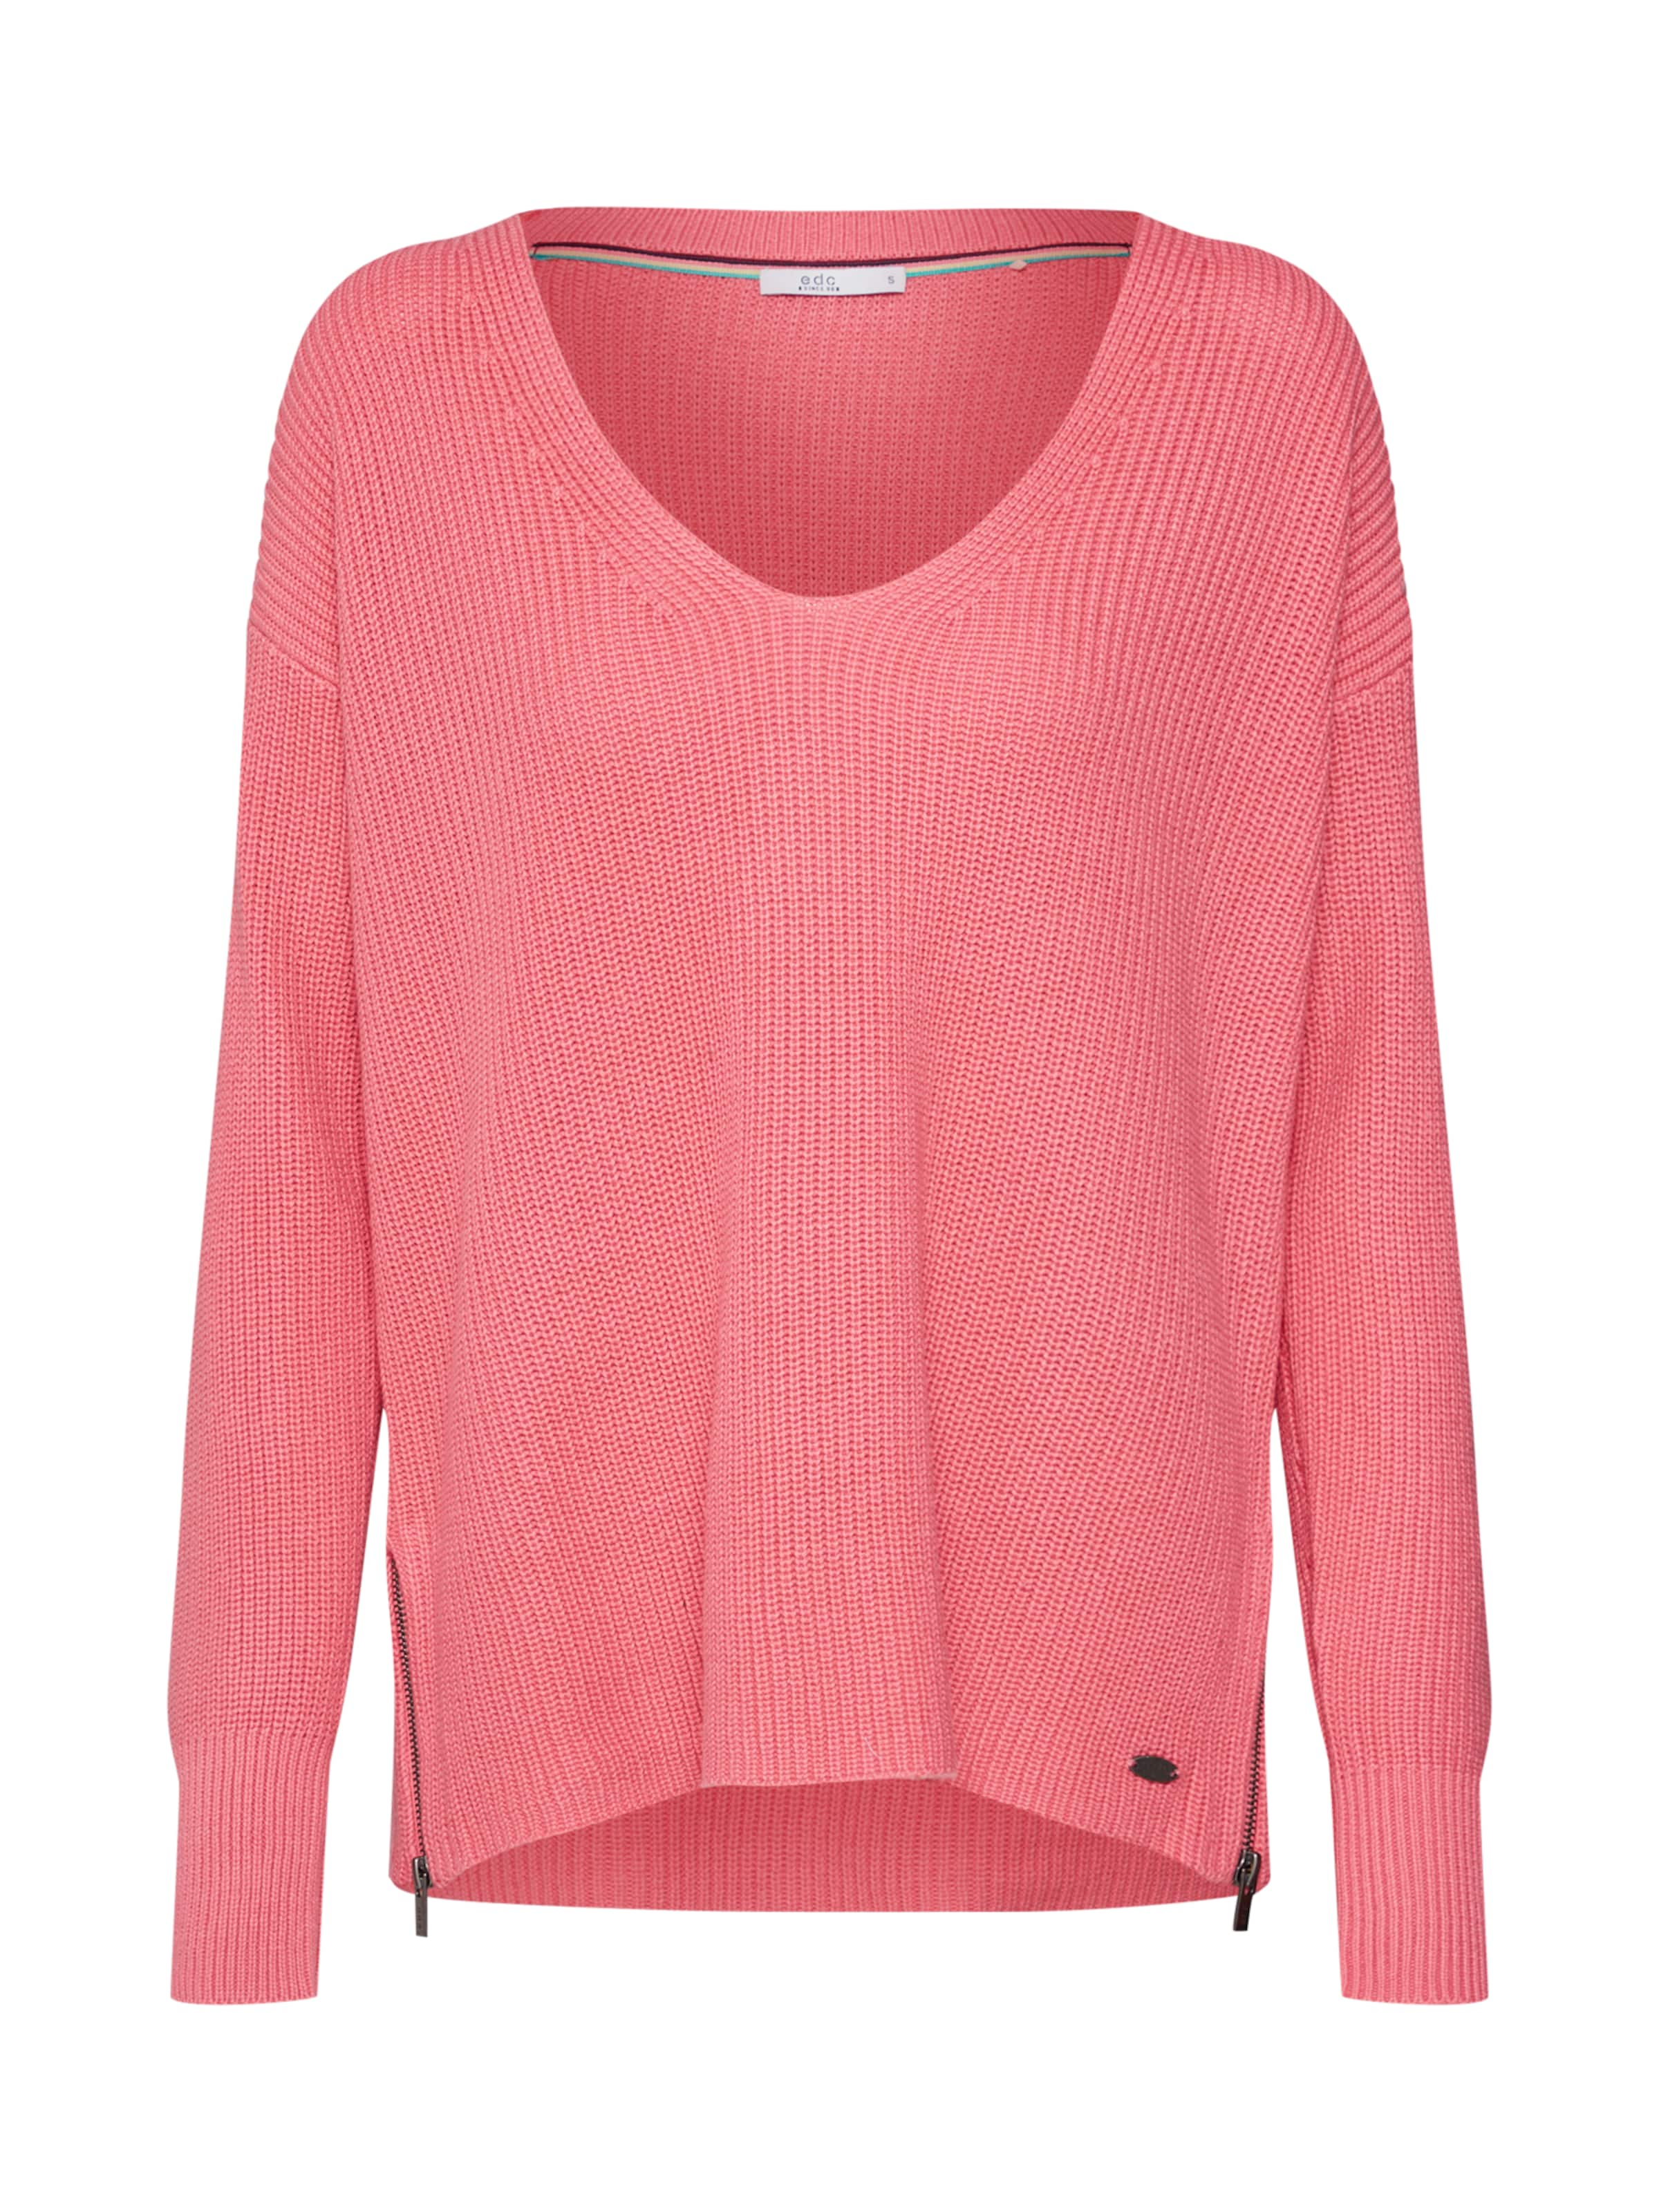 Pink In Edc By Esprit Sweater OkiuZTwXlP